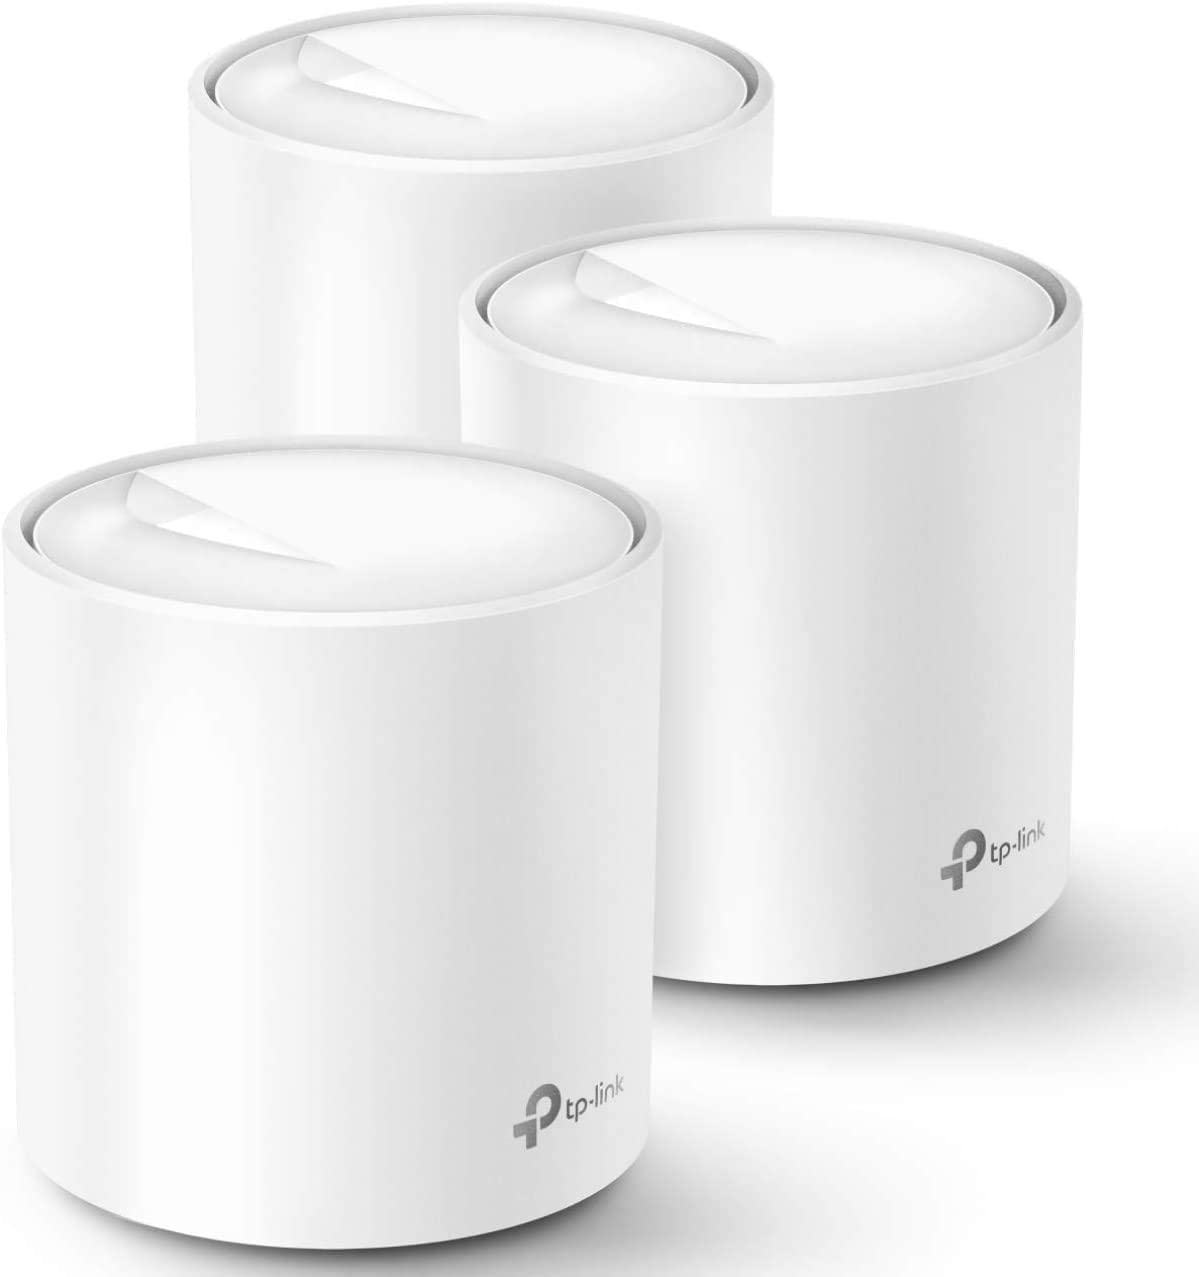 TP-Link Deco X60 WiFi 6 AX3000 Whole-Home Mesh Wi-Fi System, 3-Pack